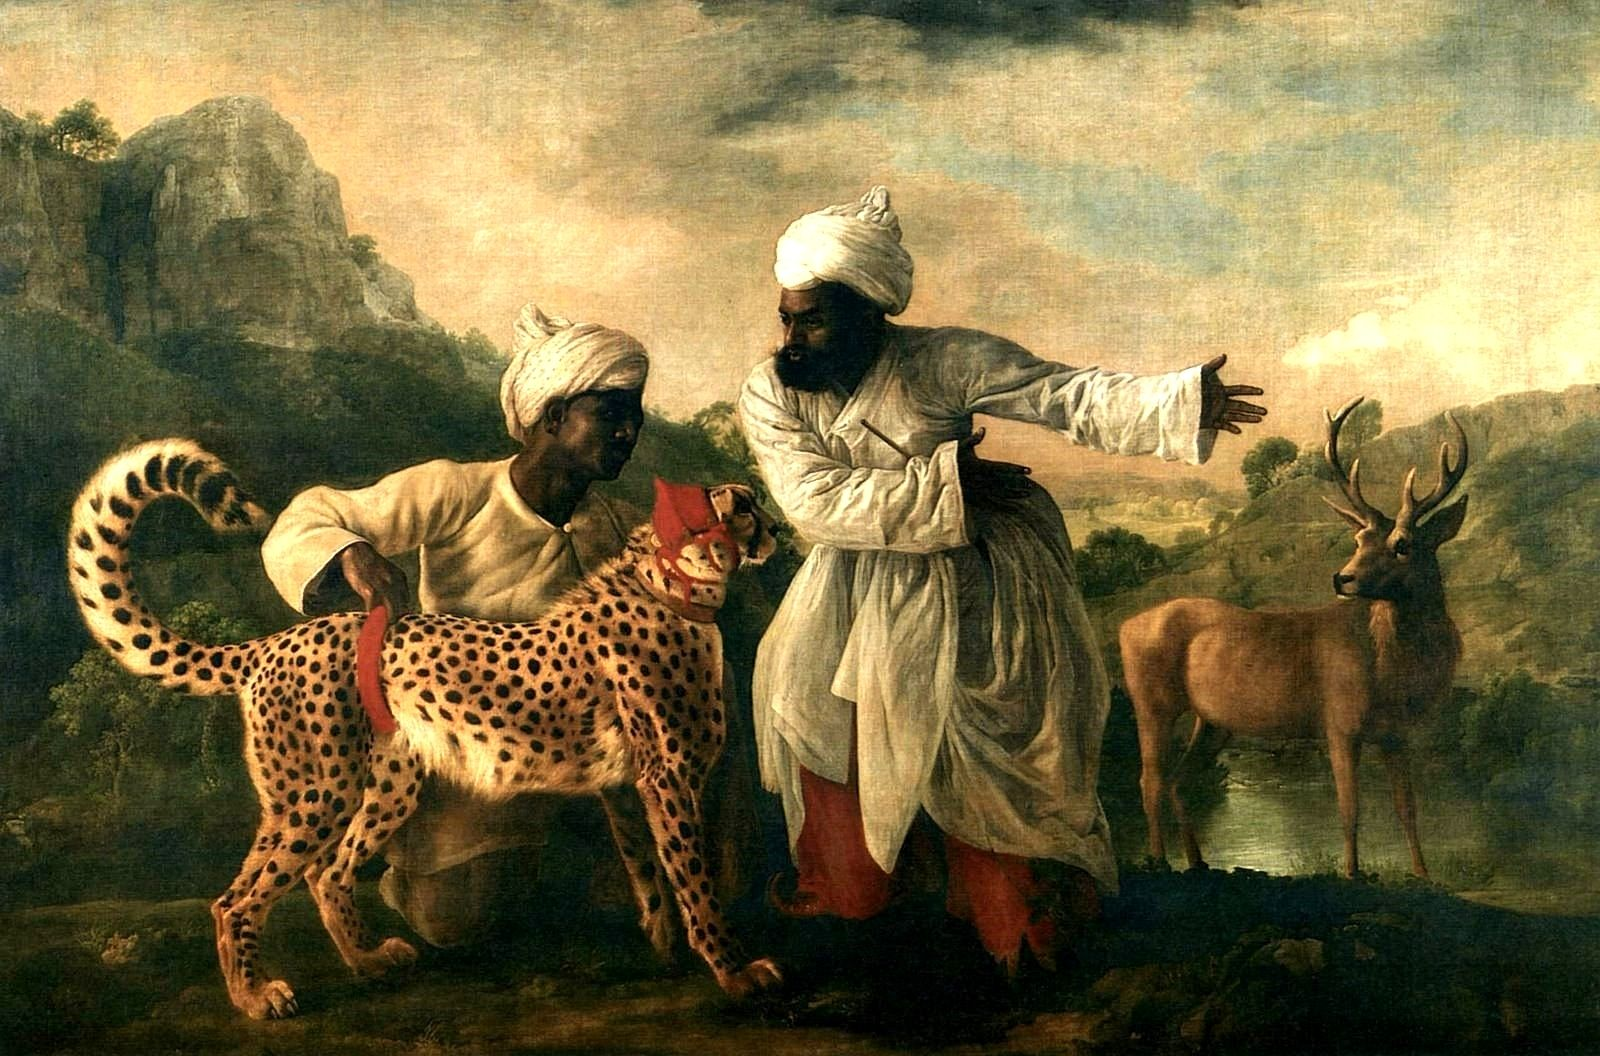 A Cheetah With Two Indian Attendants and a Stag